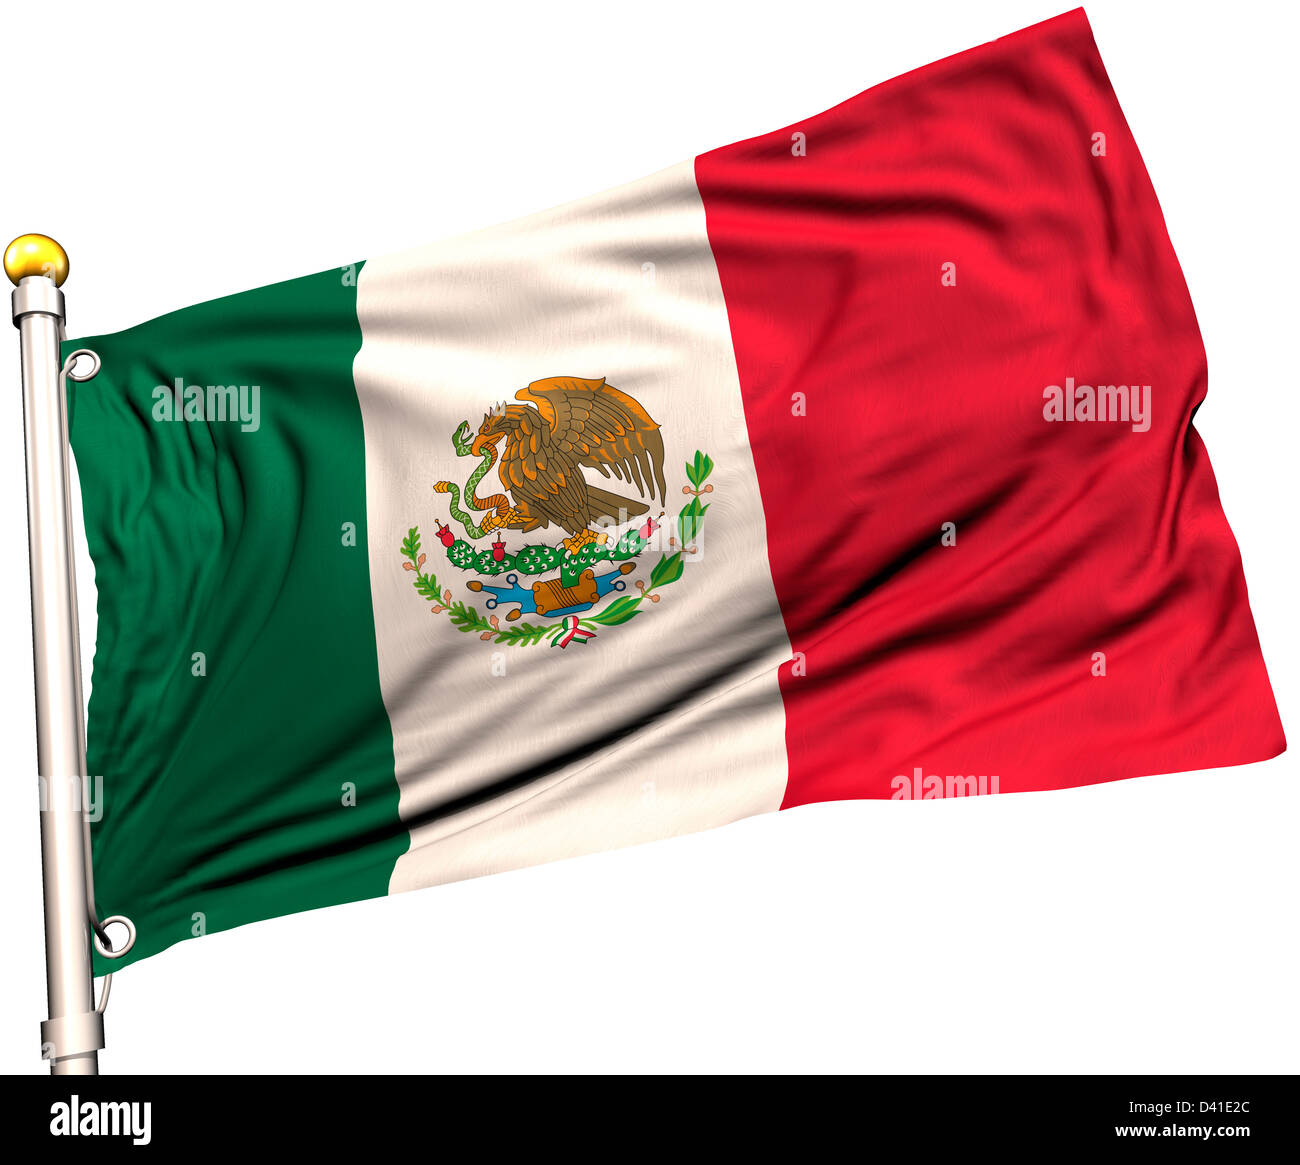 Mexico flag on a flag pole. Clipping path included. Silk texture visible on the flag at 100%. - Stock Image